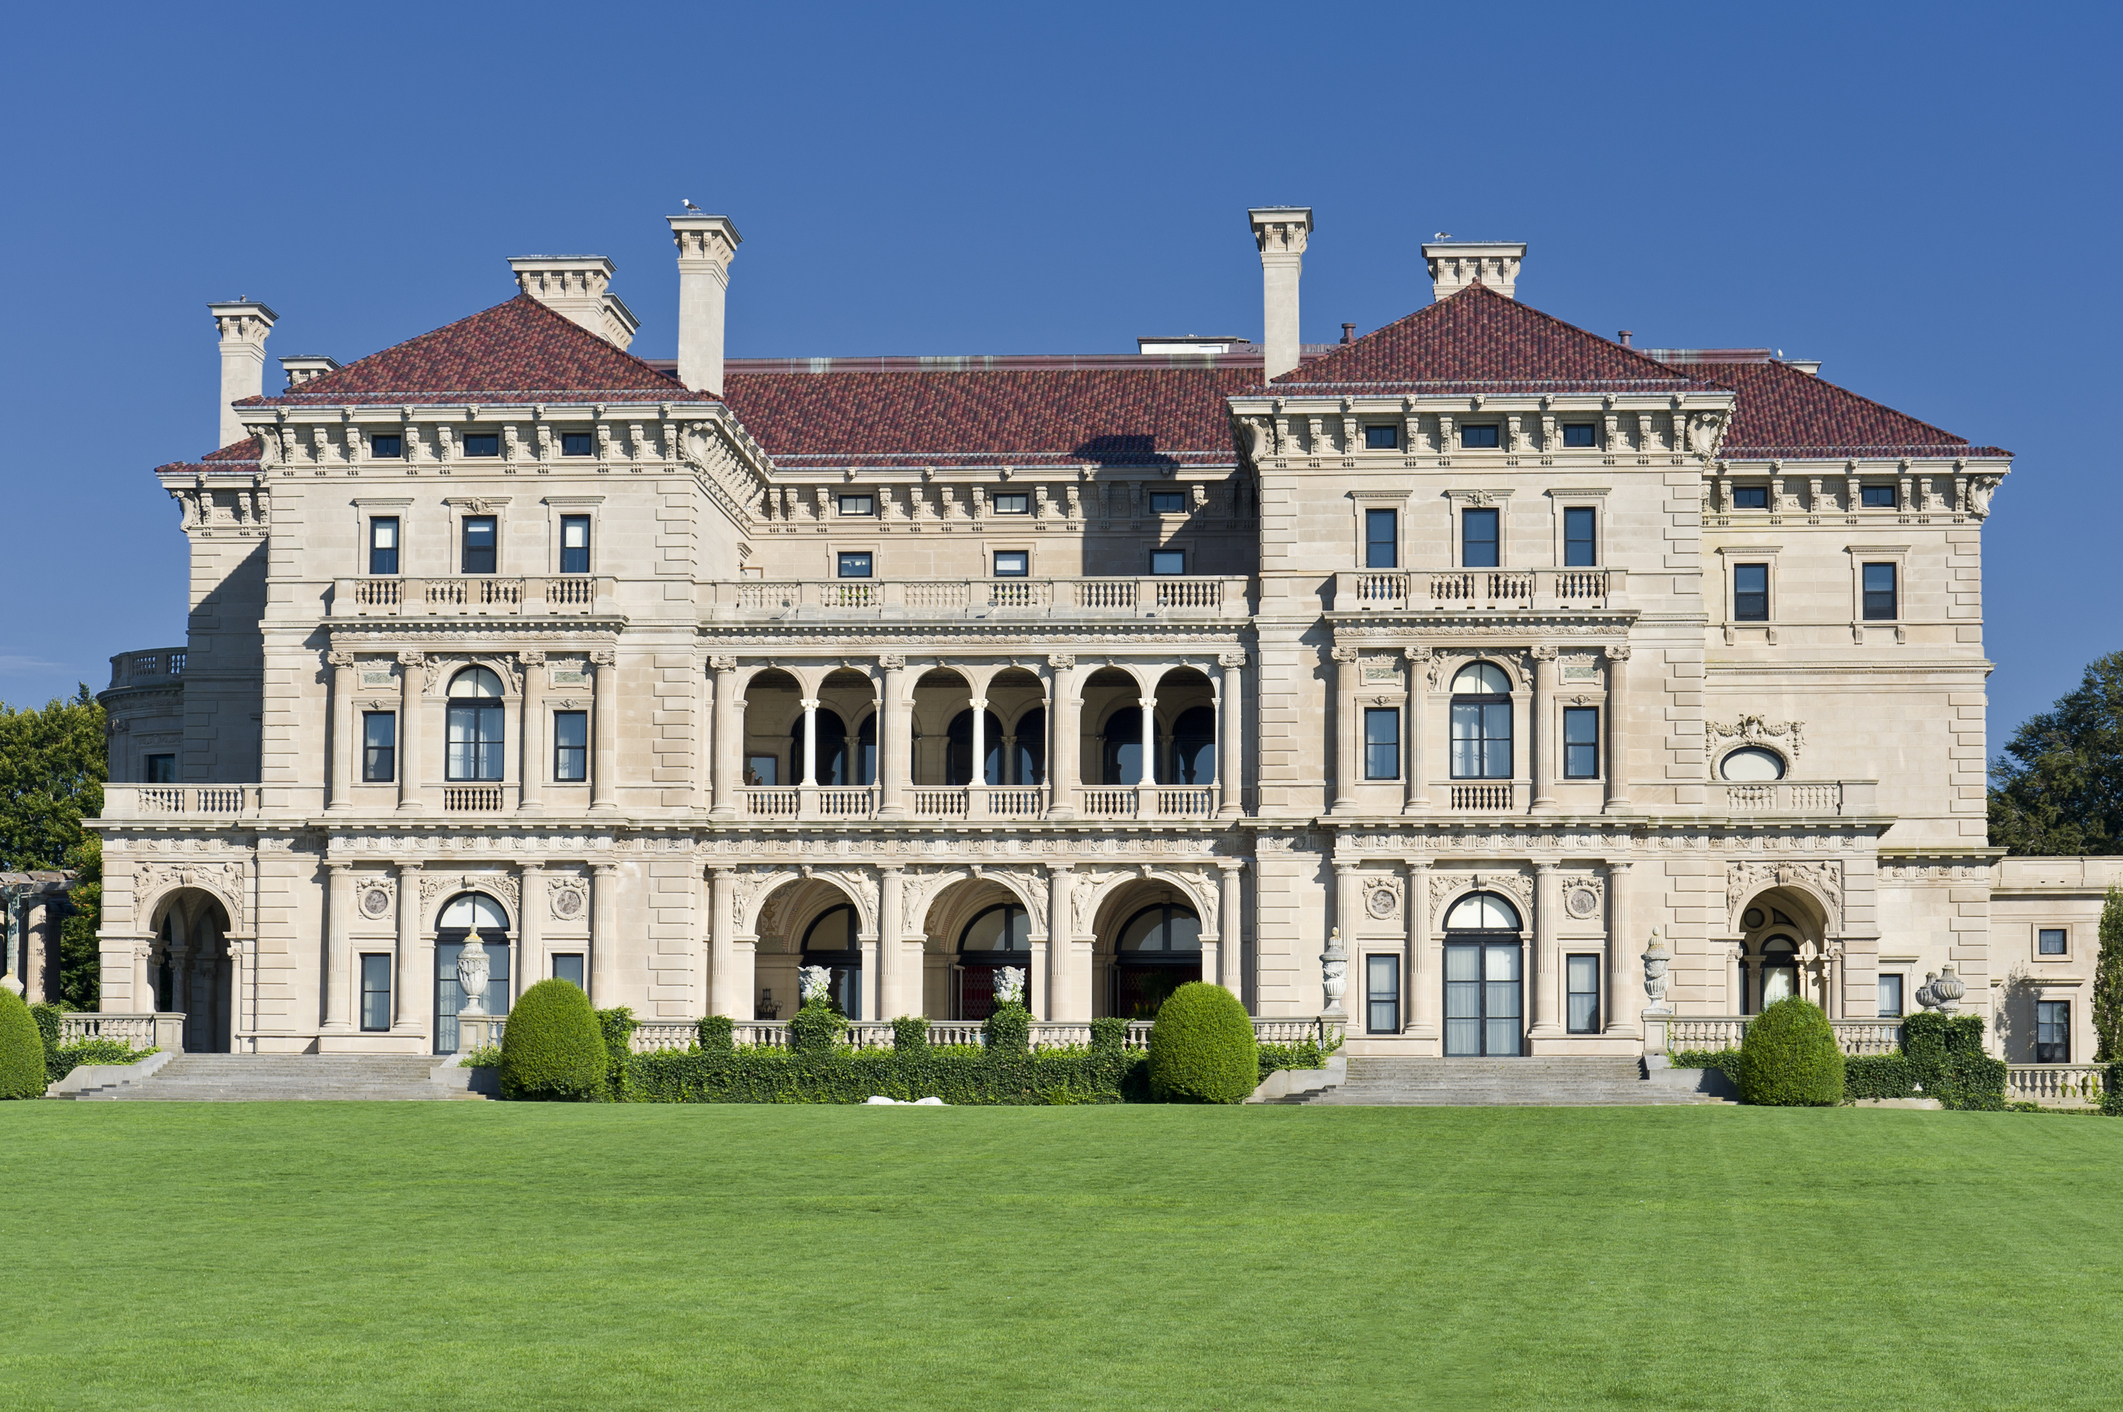 Newport - Visit gilded age mansions